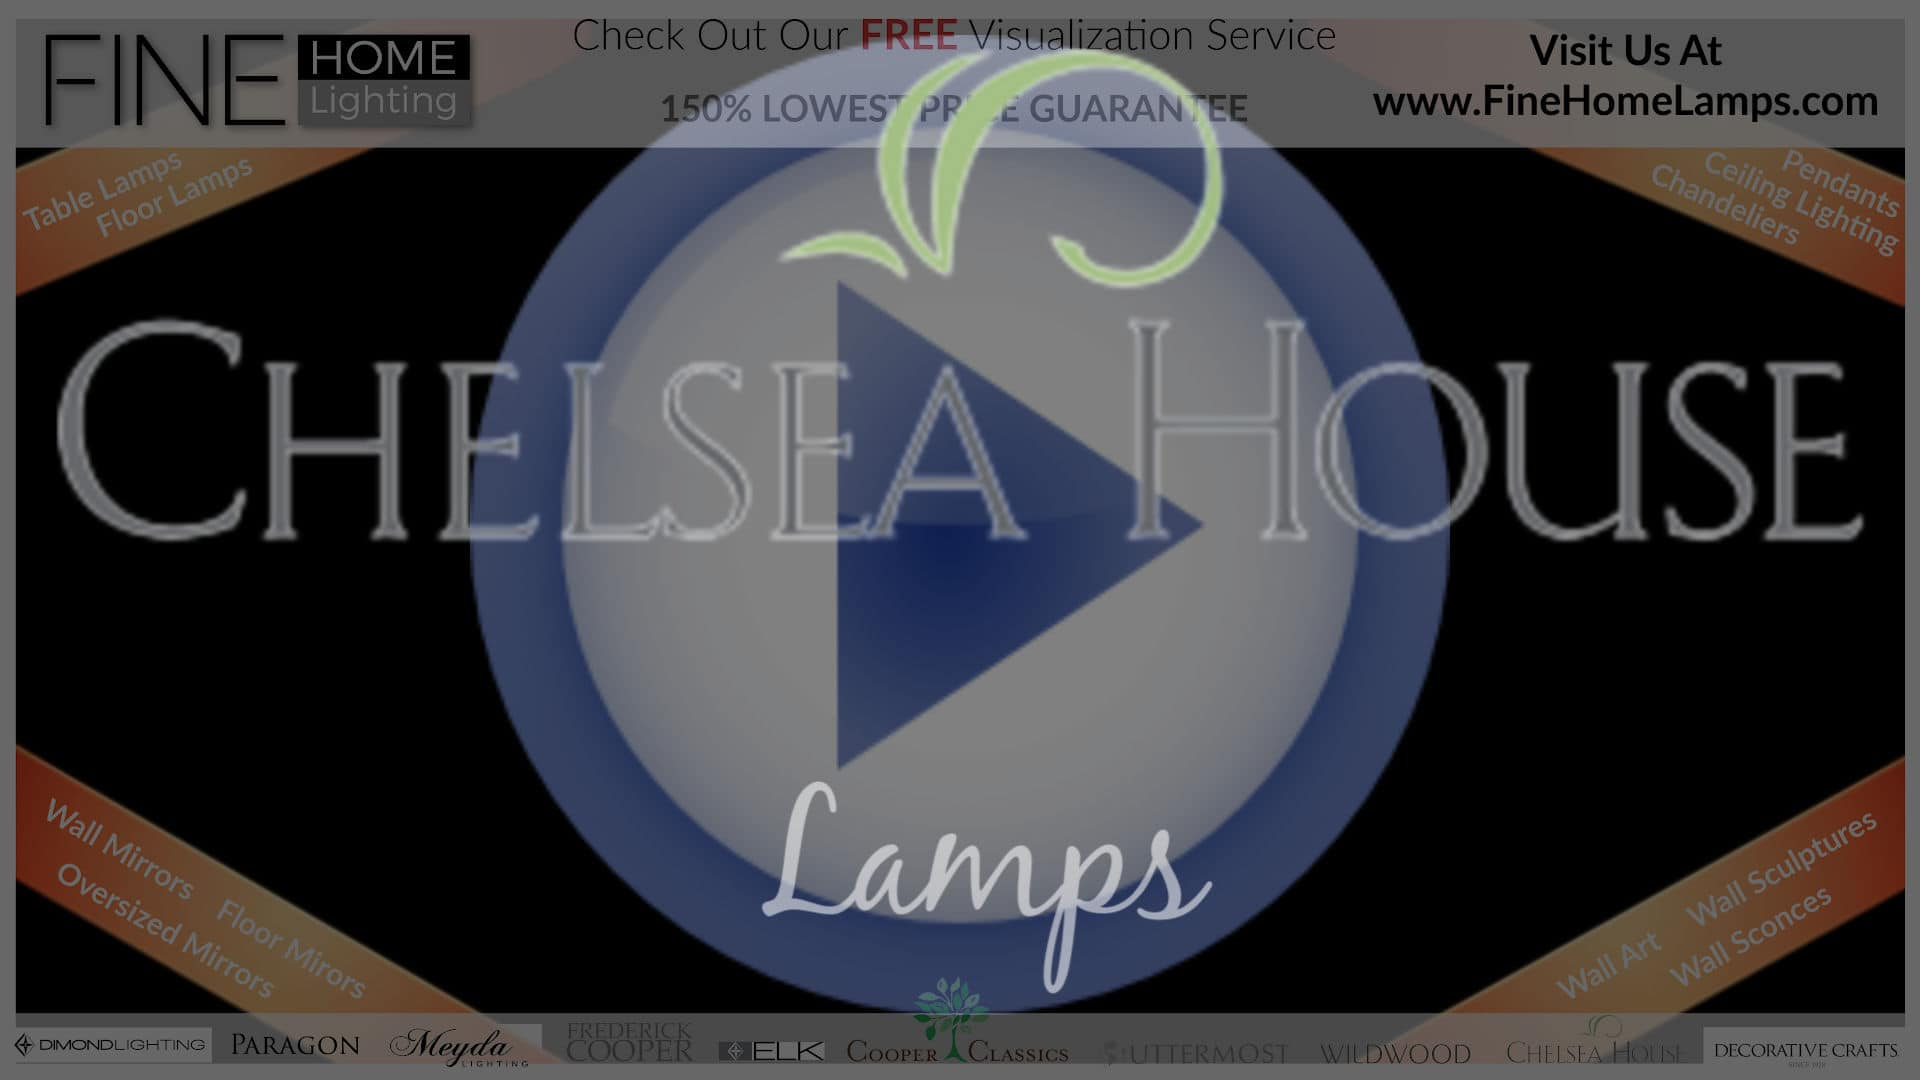 Chelsea-House-Lamps-Thanks-for-watching-this-video-Get-an-additional-15-percent-off-your-next-purchase-Use-Coupon-Code-VIDEO